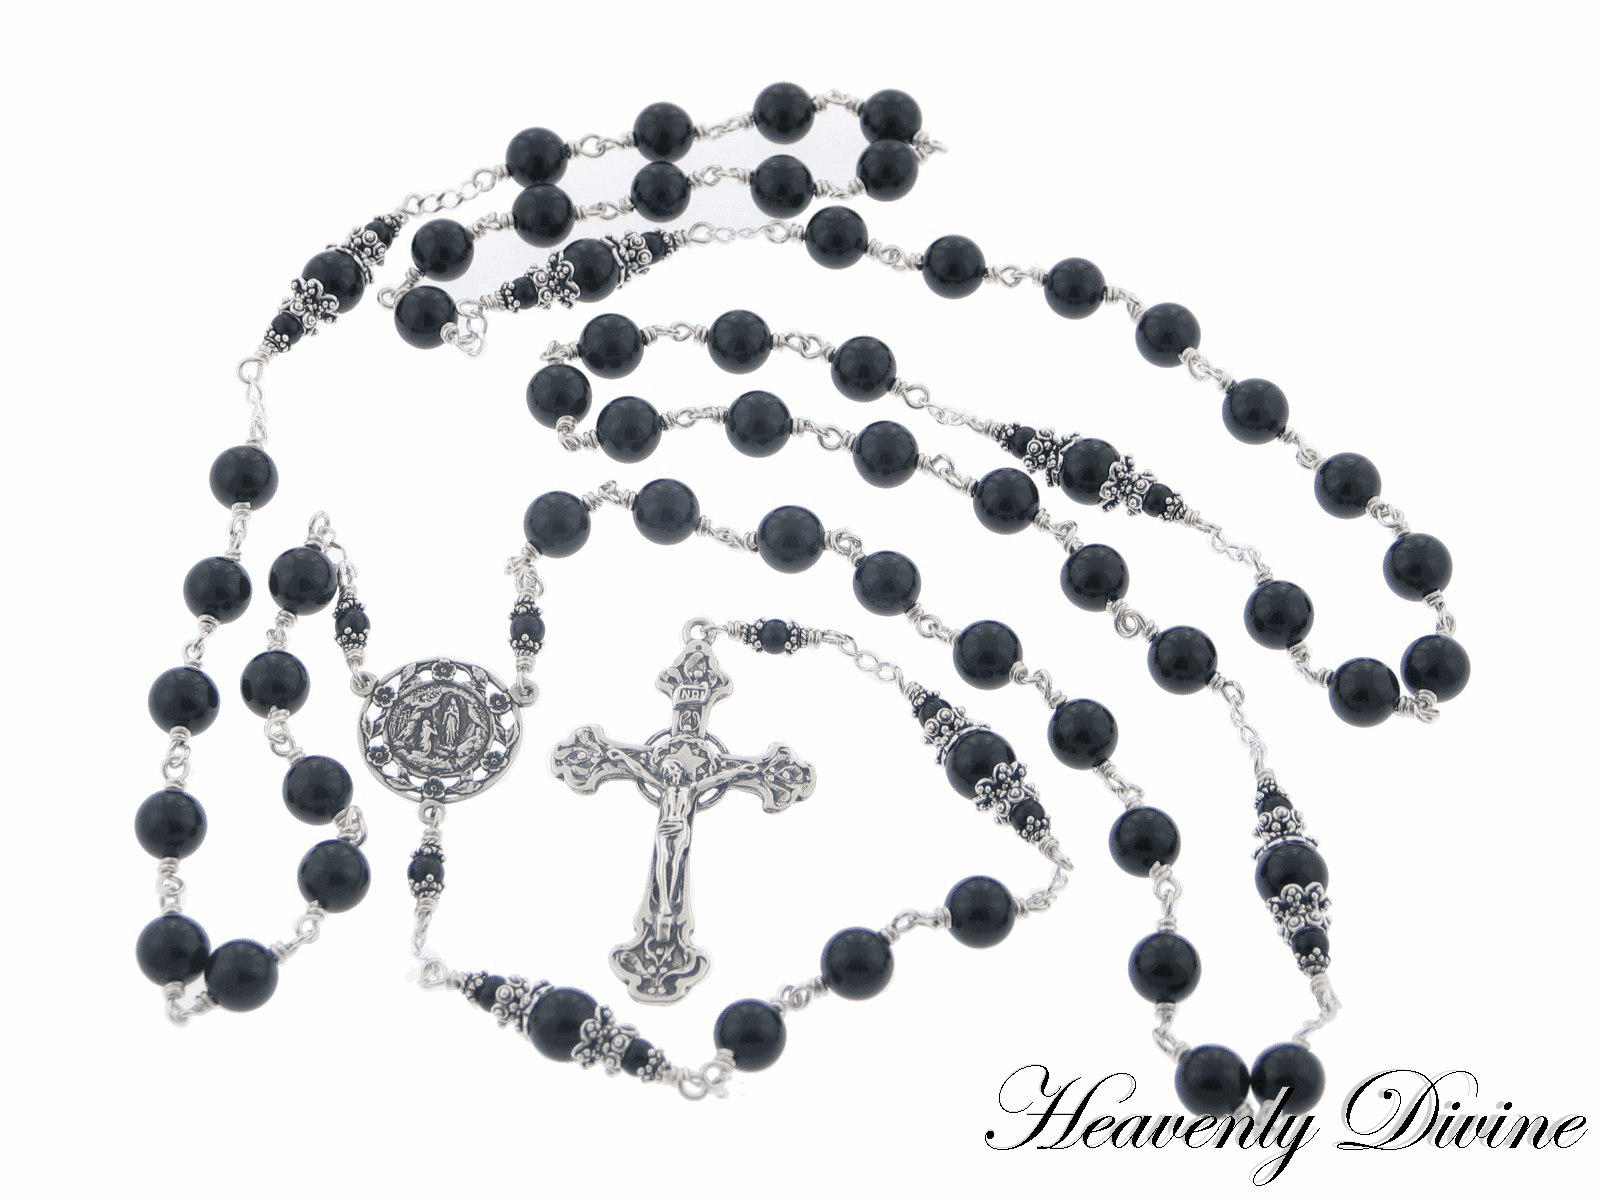 Handmade Wire Wrapped Our Lady of Lourdes Rosary by Heavenly Divine